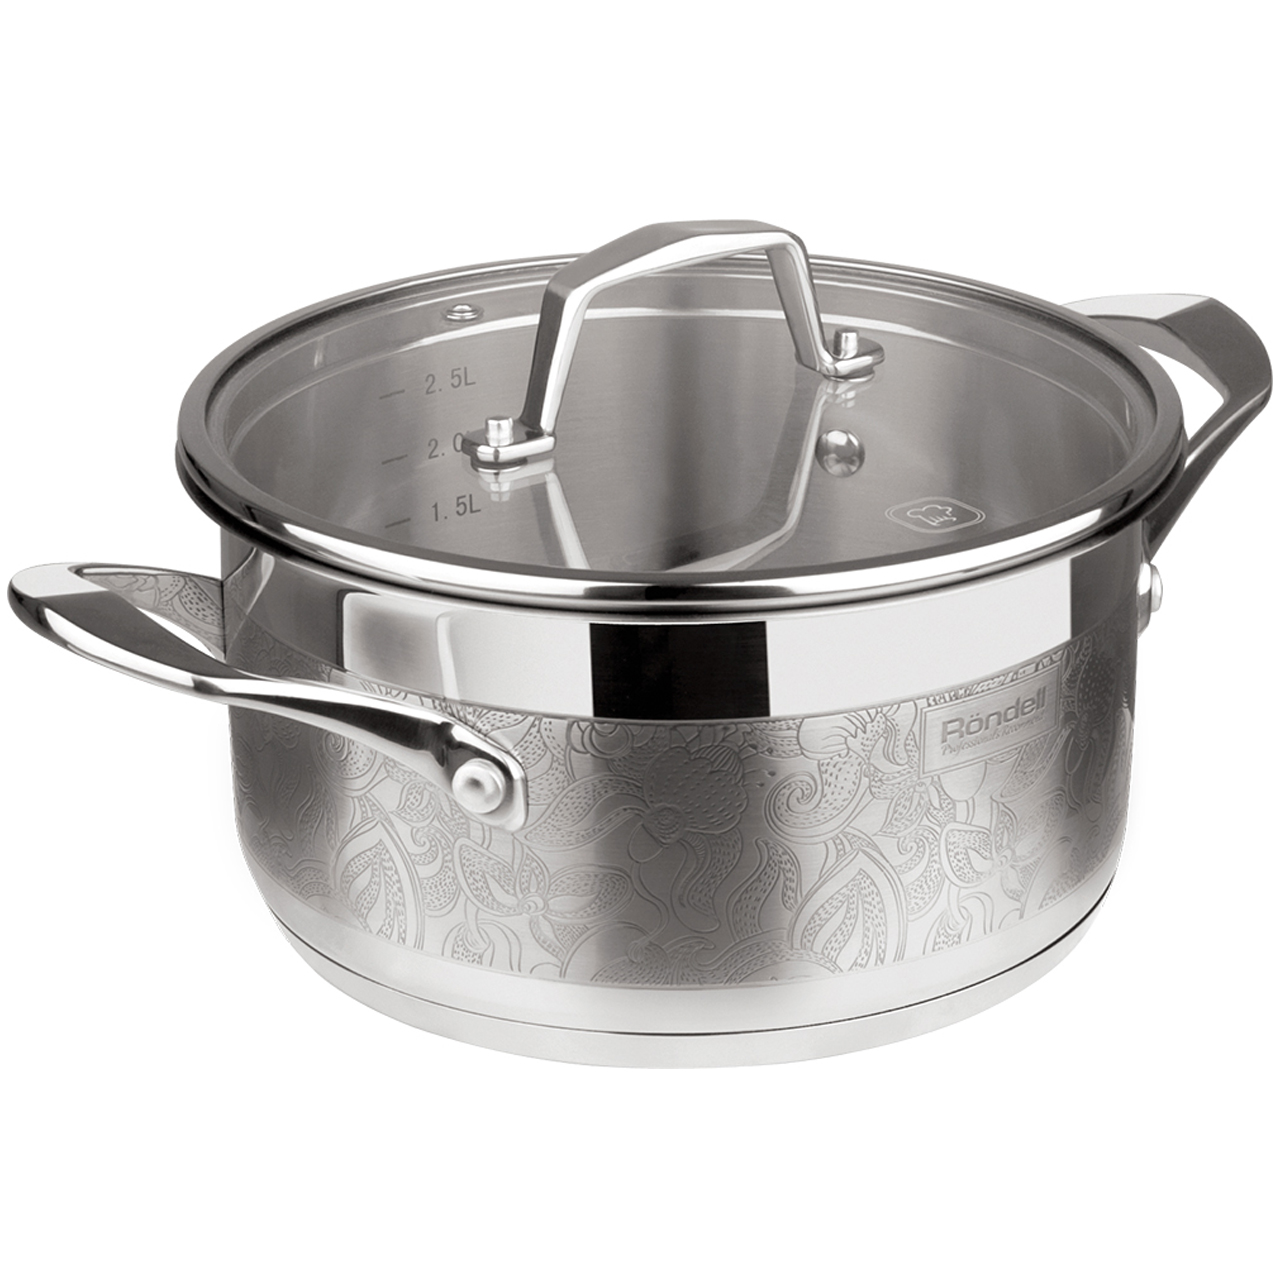 Фото - Saucepan with lid Rondell Fancy 20 cm (2,5 L) RDS-397 (Diameter 20 cm, volume of 2.5 L stainless steel, suitable for all types of plates) saucepan with lid eurostek es 1007 volume 4 5 liter diameter 22 cm пятислойное bottom suitable for all types of plates